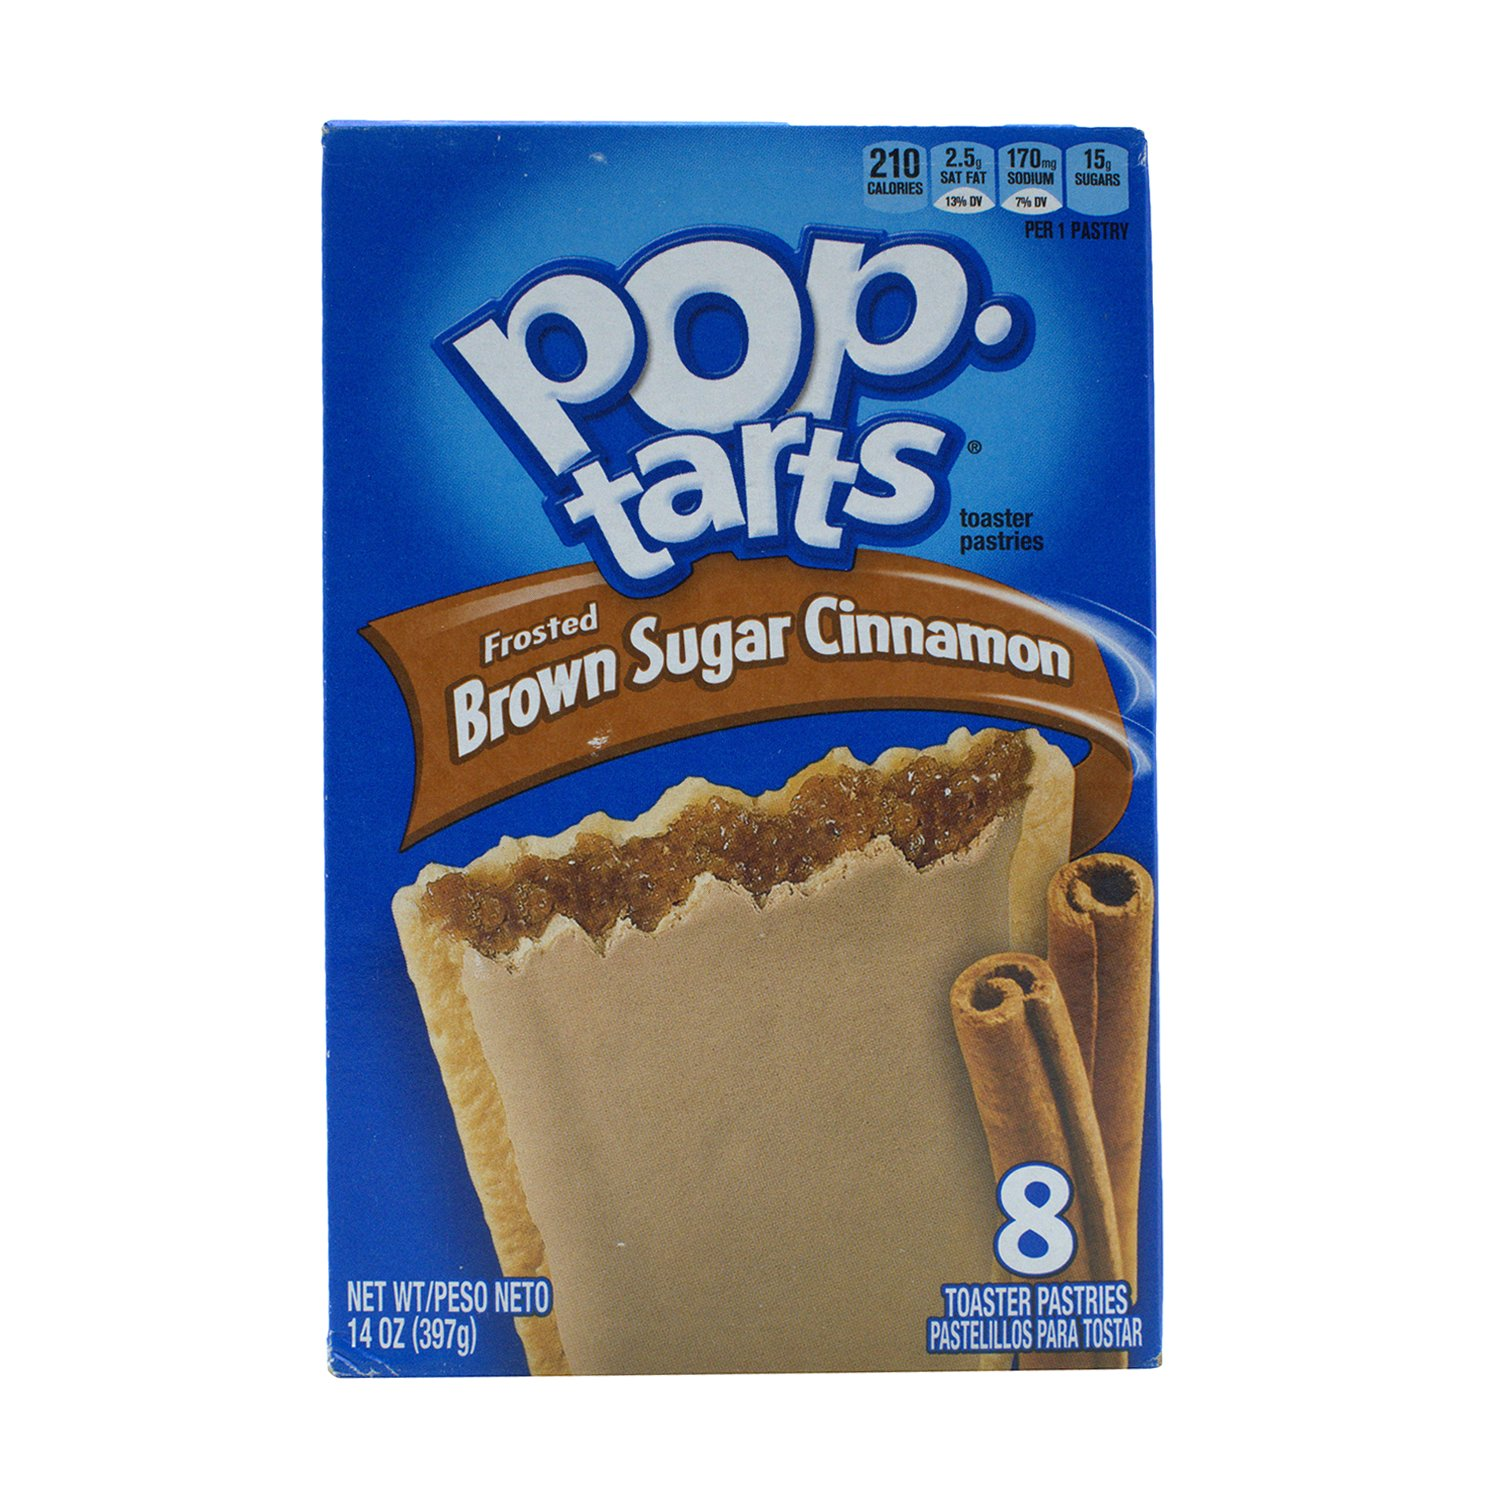 Pop Tarts Brauner Zimt Zucker 416g: Amazon.com: Grocery ...